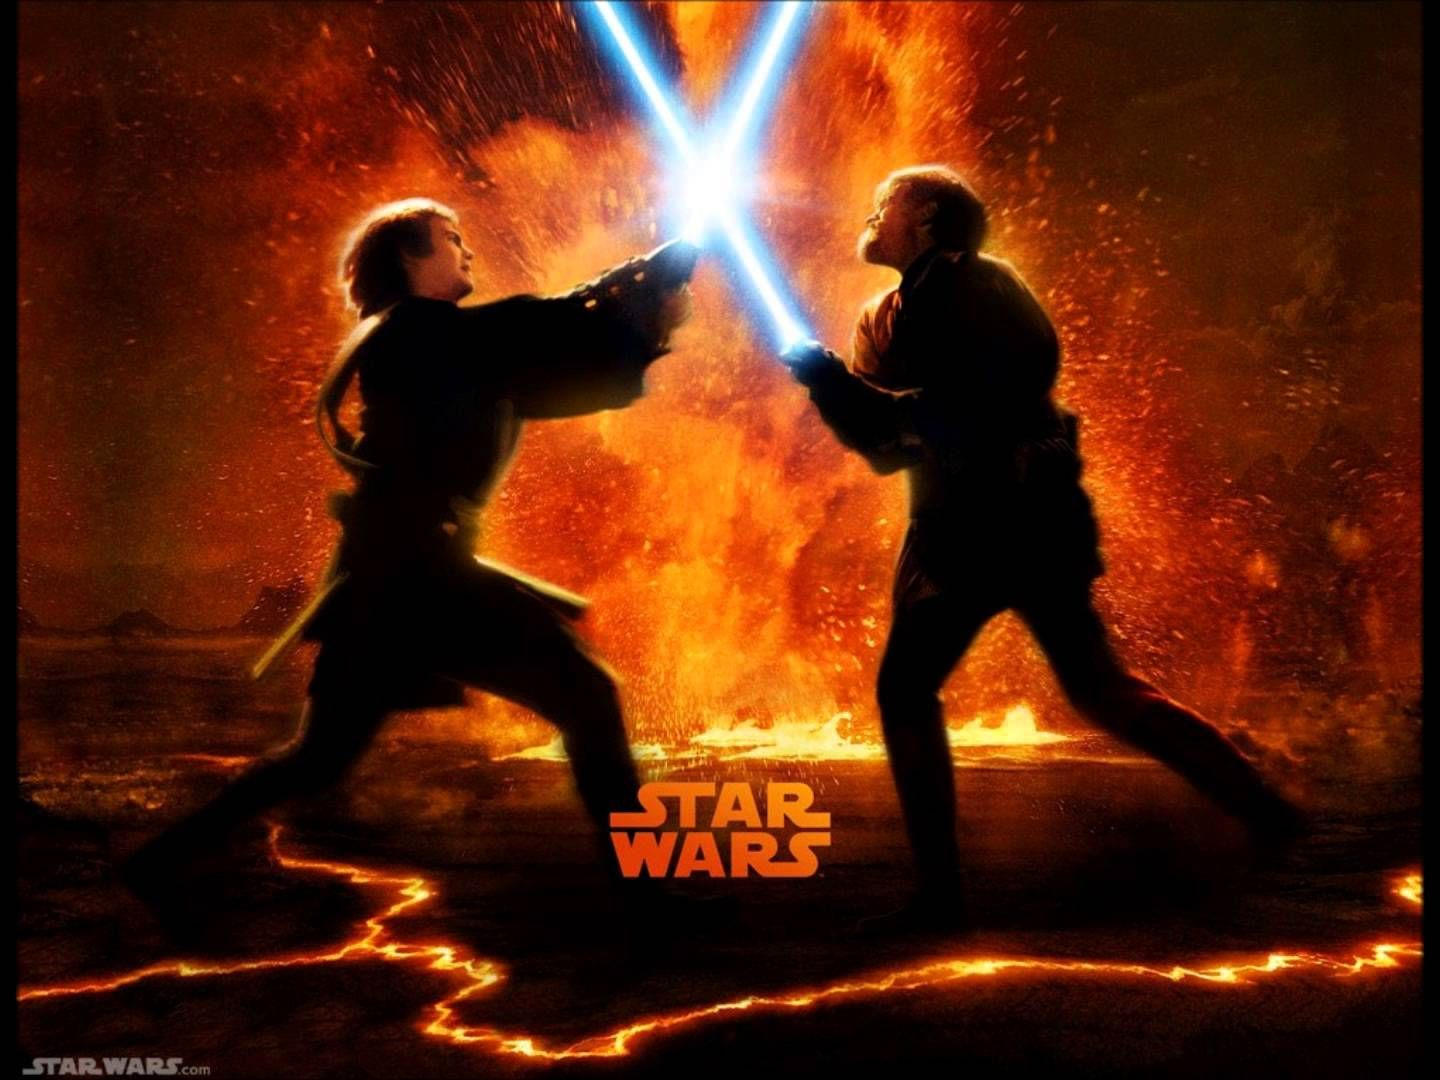 Star Wars Revenge Of The Sith Soundtrack Anakin Vs Obiwan The Great Duel Star Wars Facts Star Wars Wallpaper Battle Of Heroes